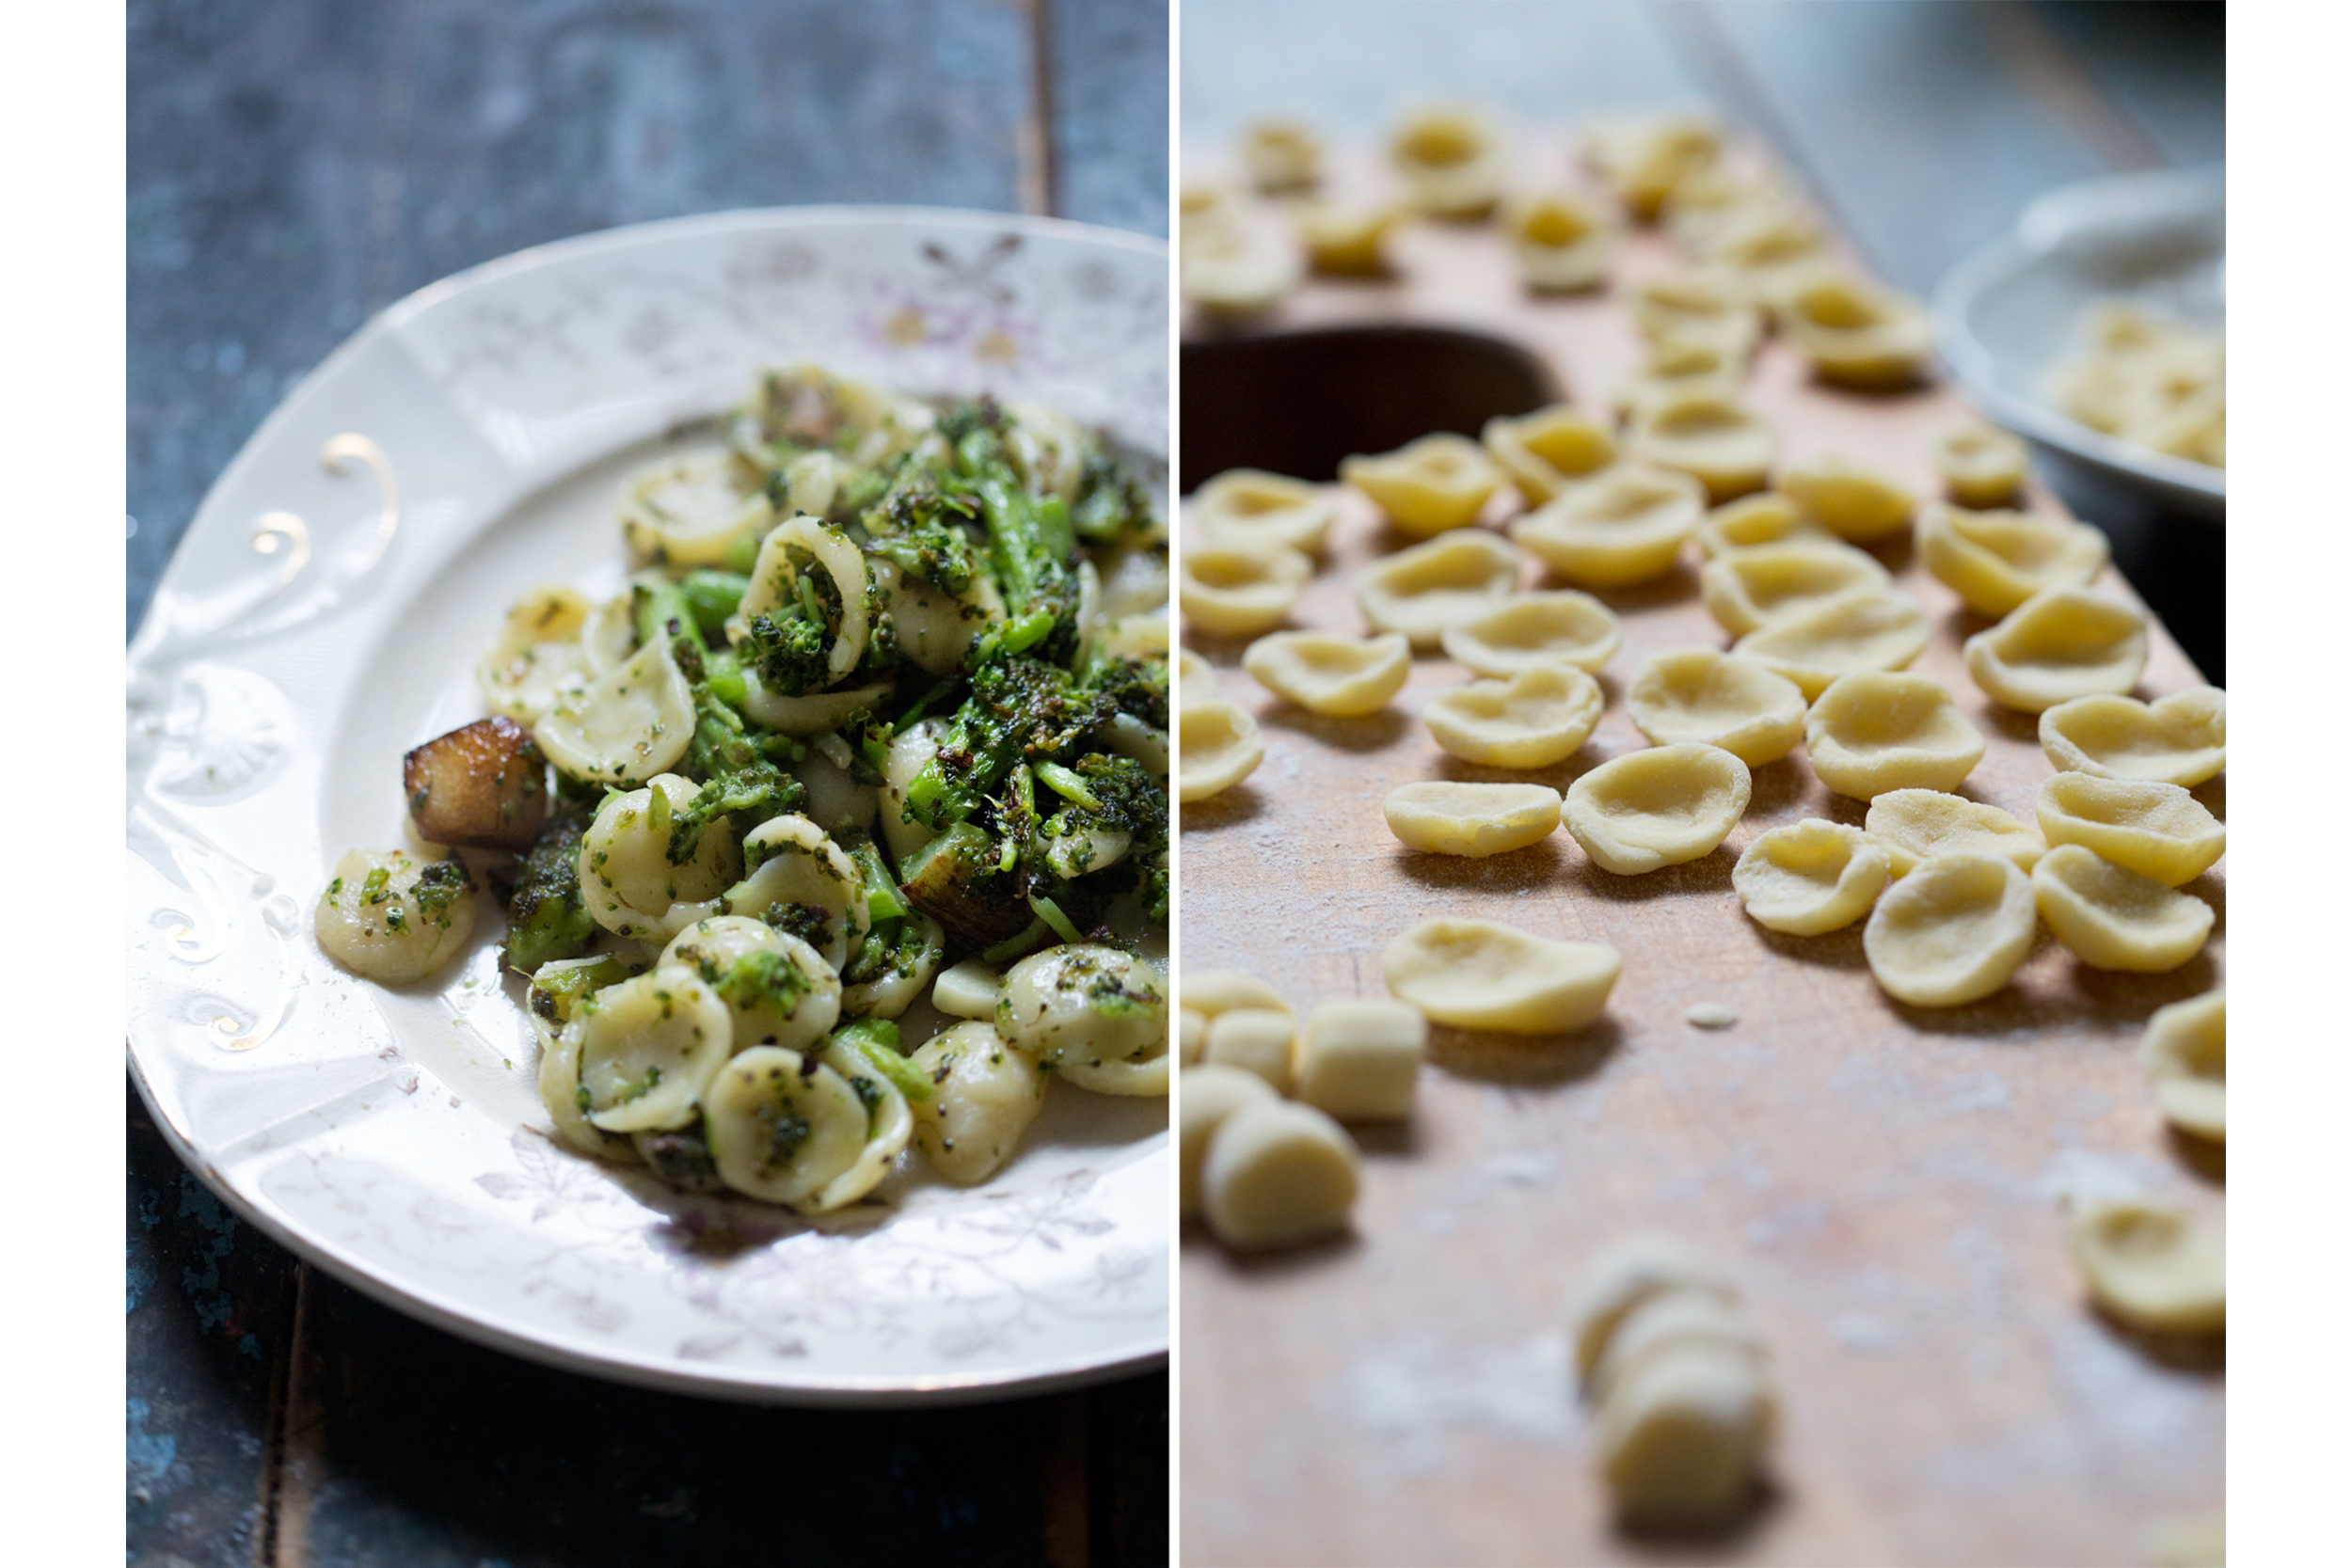 Homemade Orchiette with Broccoli